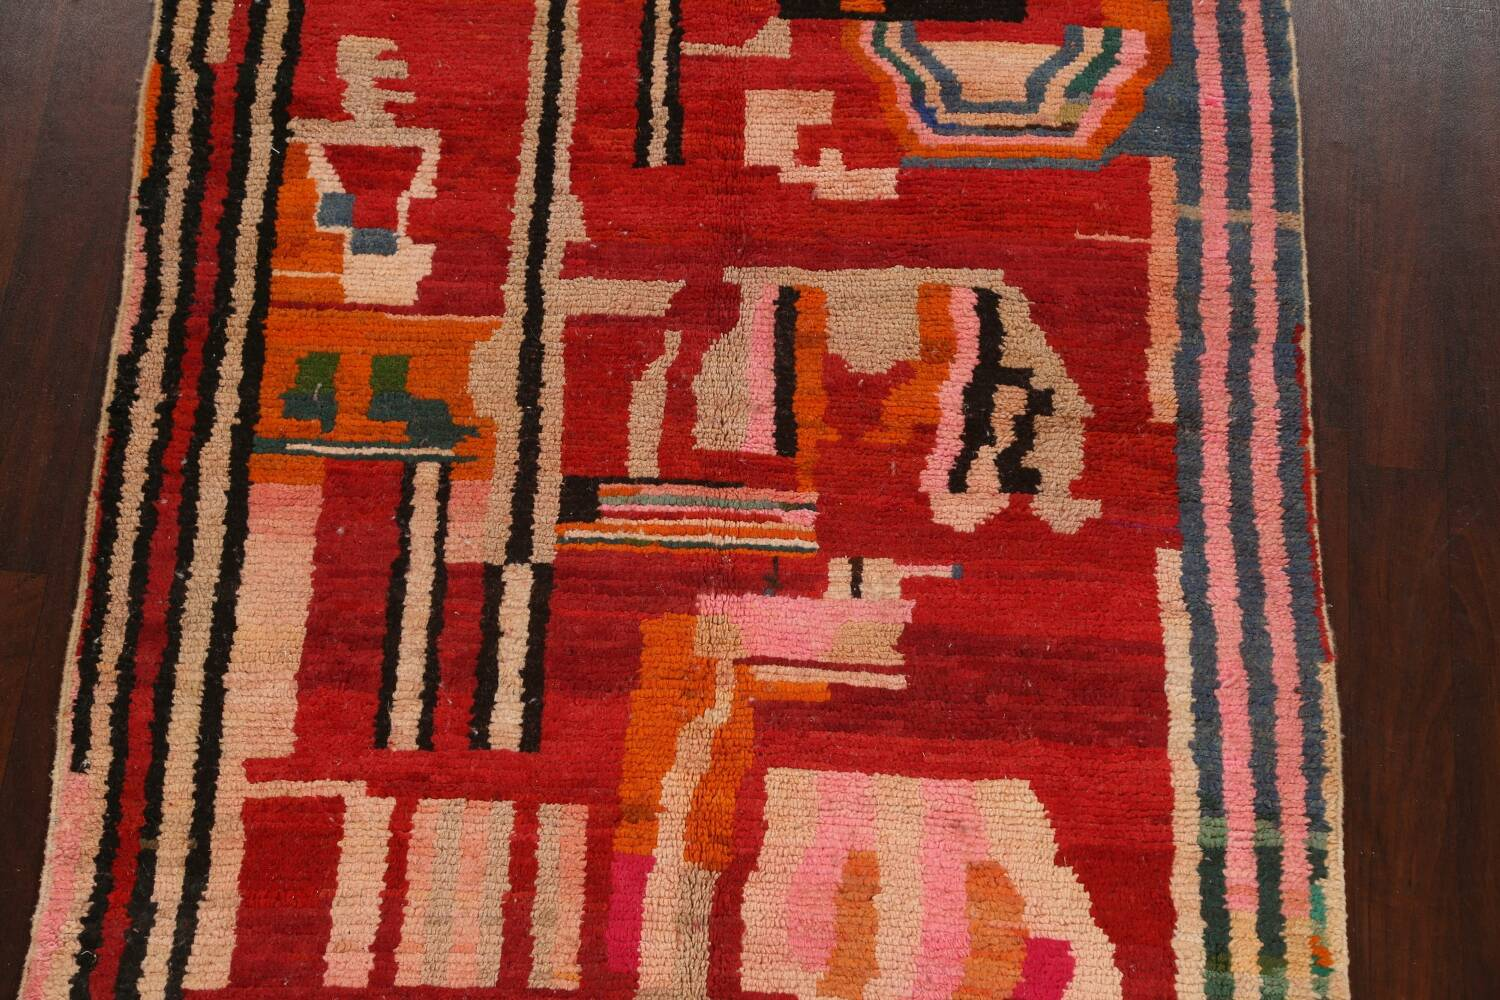 Abstract Modern Moroccan Oriental Area Rug 5x8 image 3